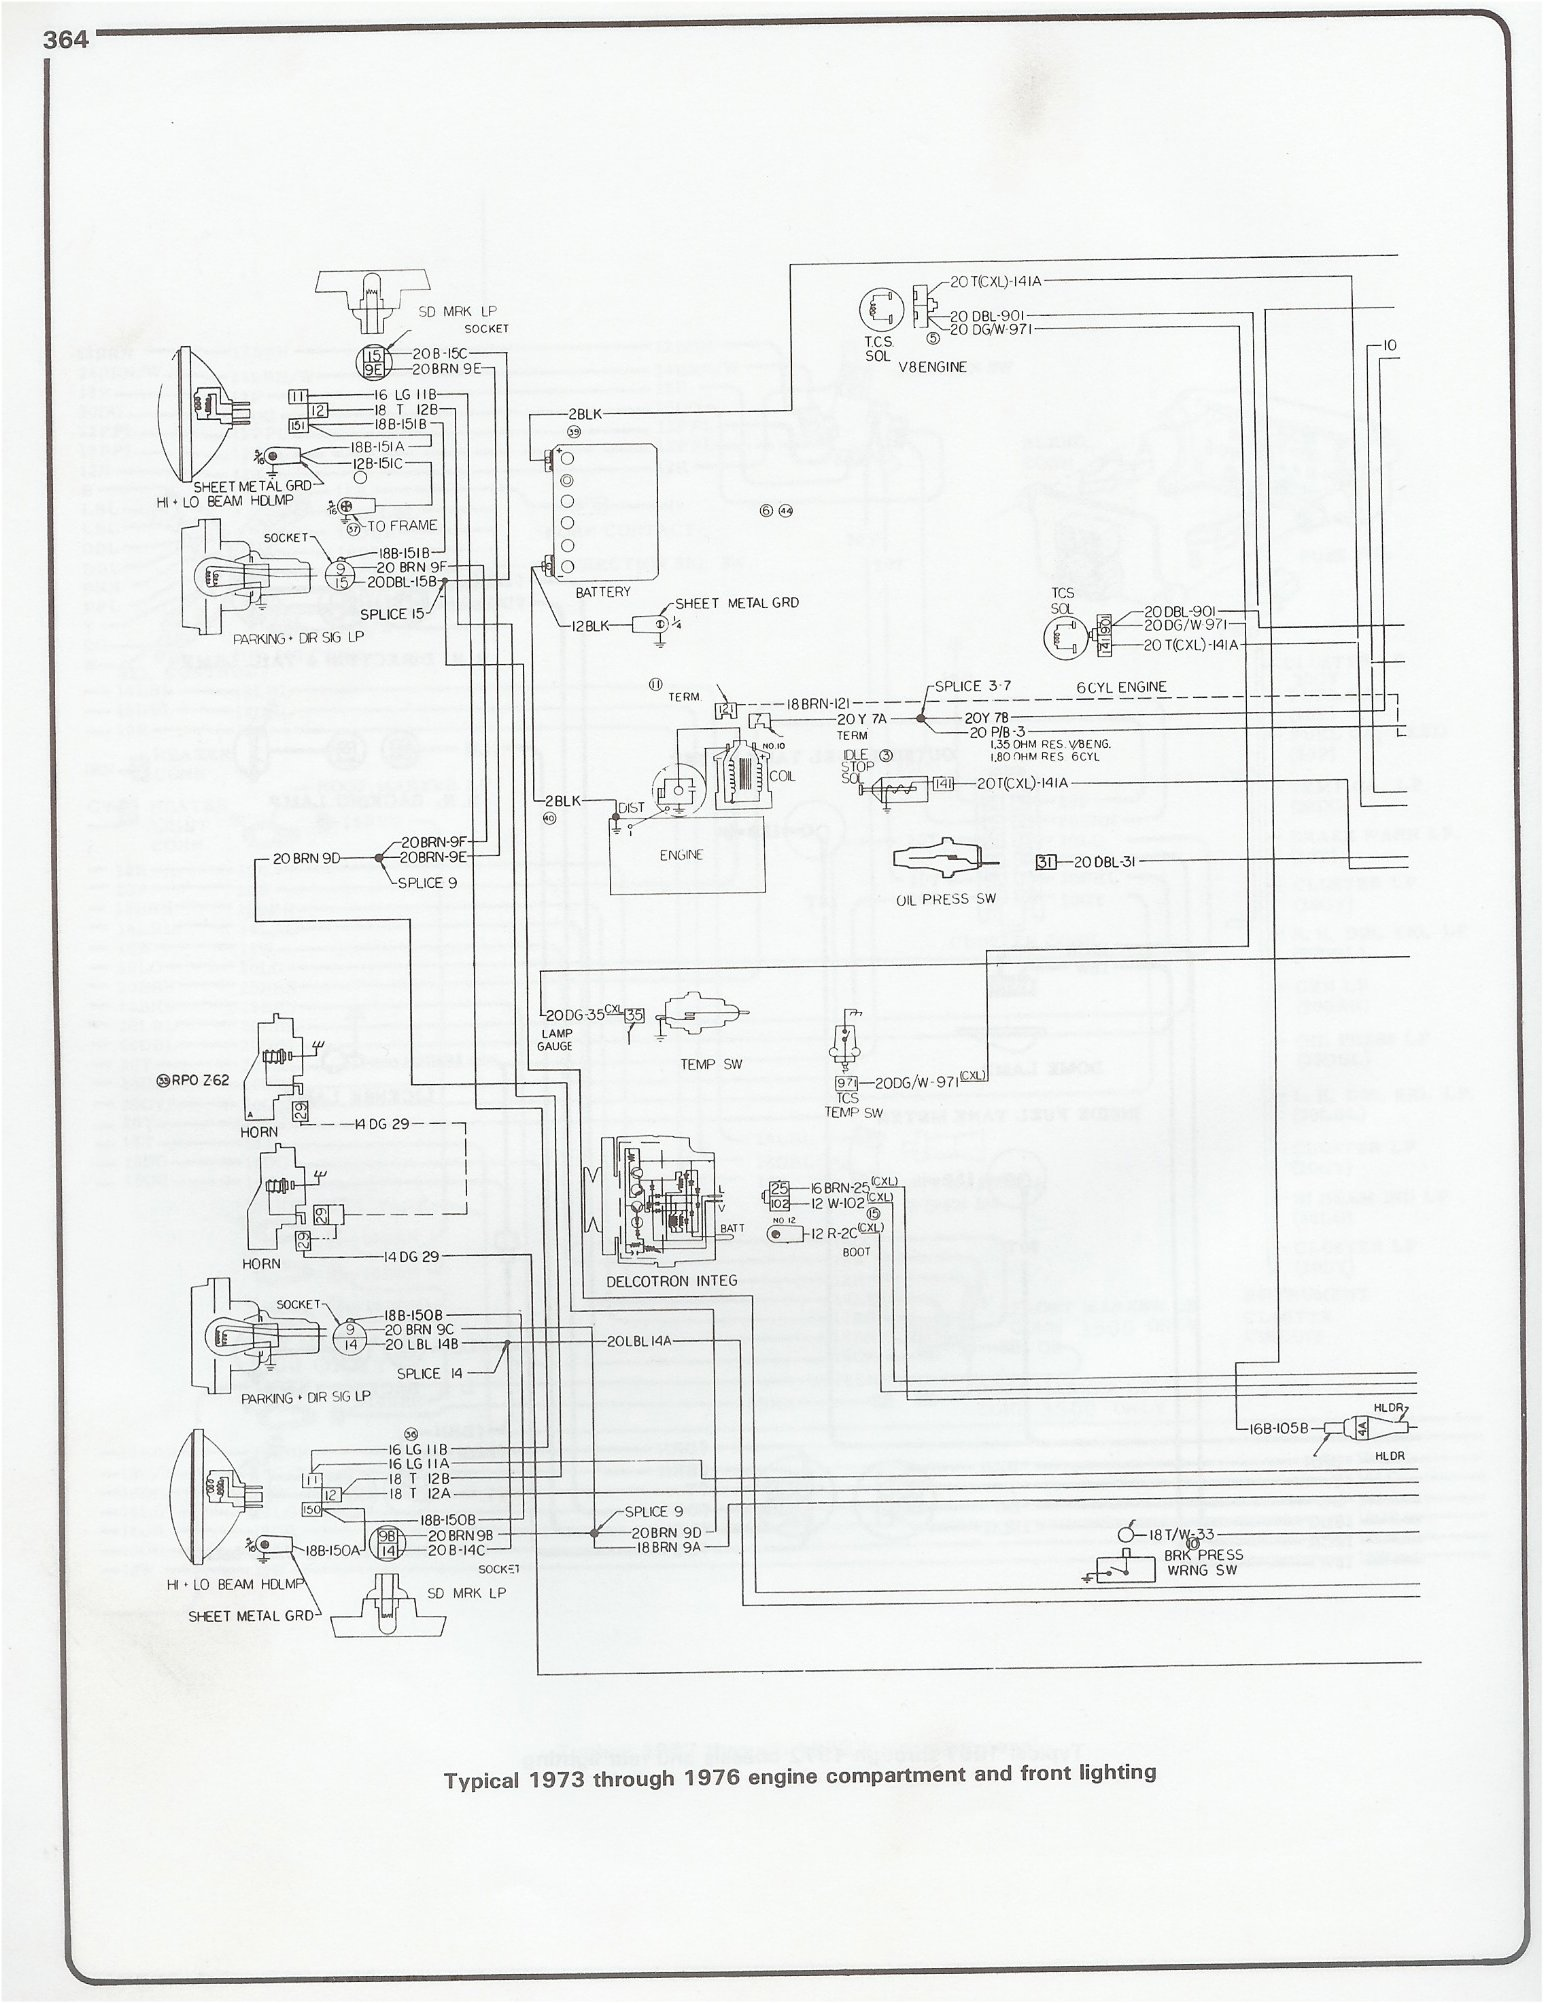 73 76_eng_frt_light complete 73 87 wiring diagrams Ford Alternator Wiring Diagram at reclaimingppi.co